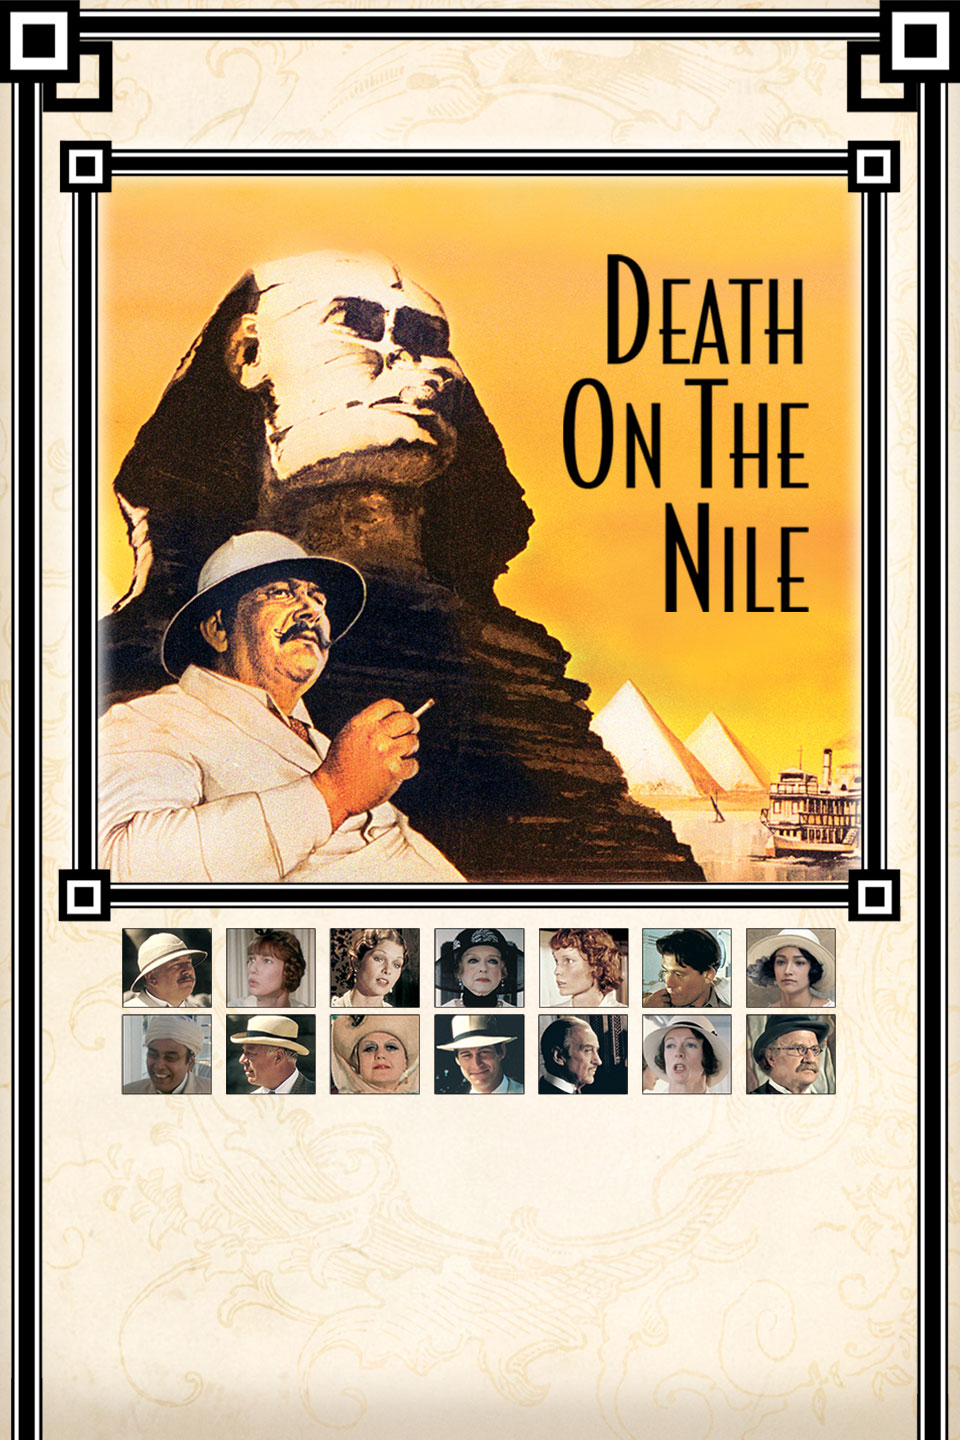 death on the nile 1978 movie poster